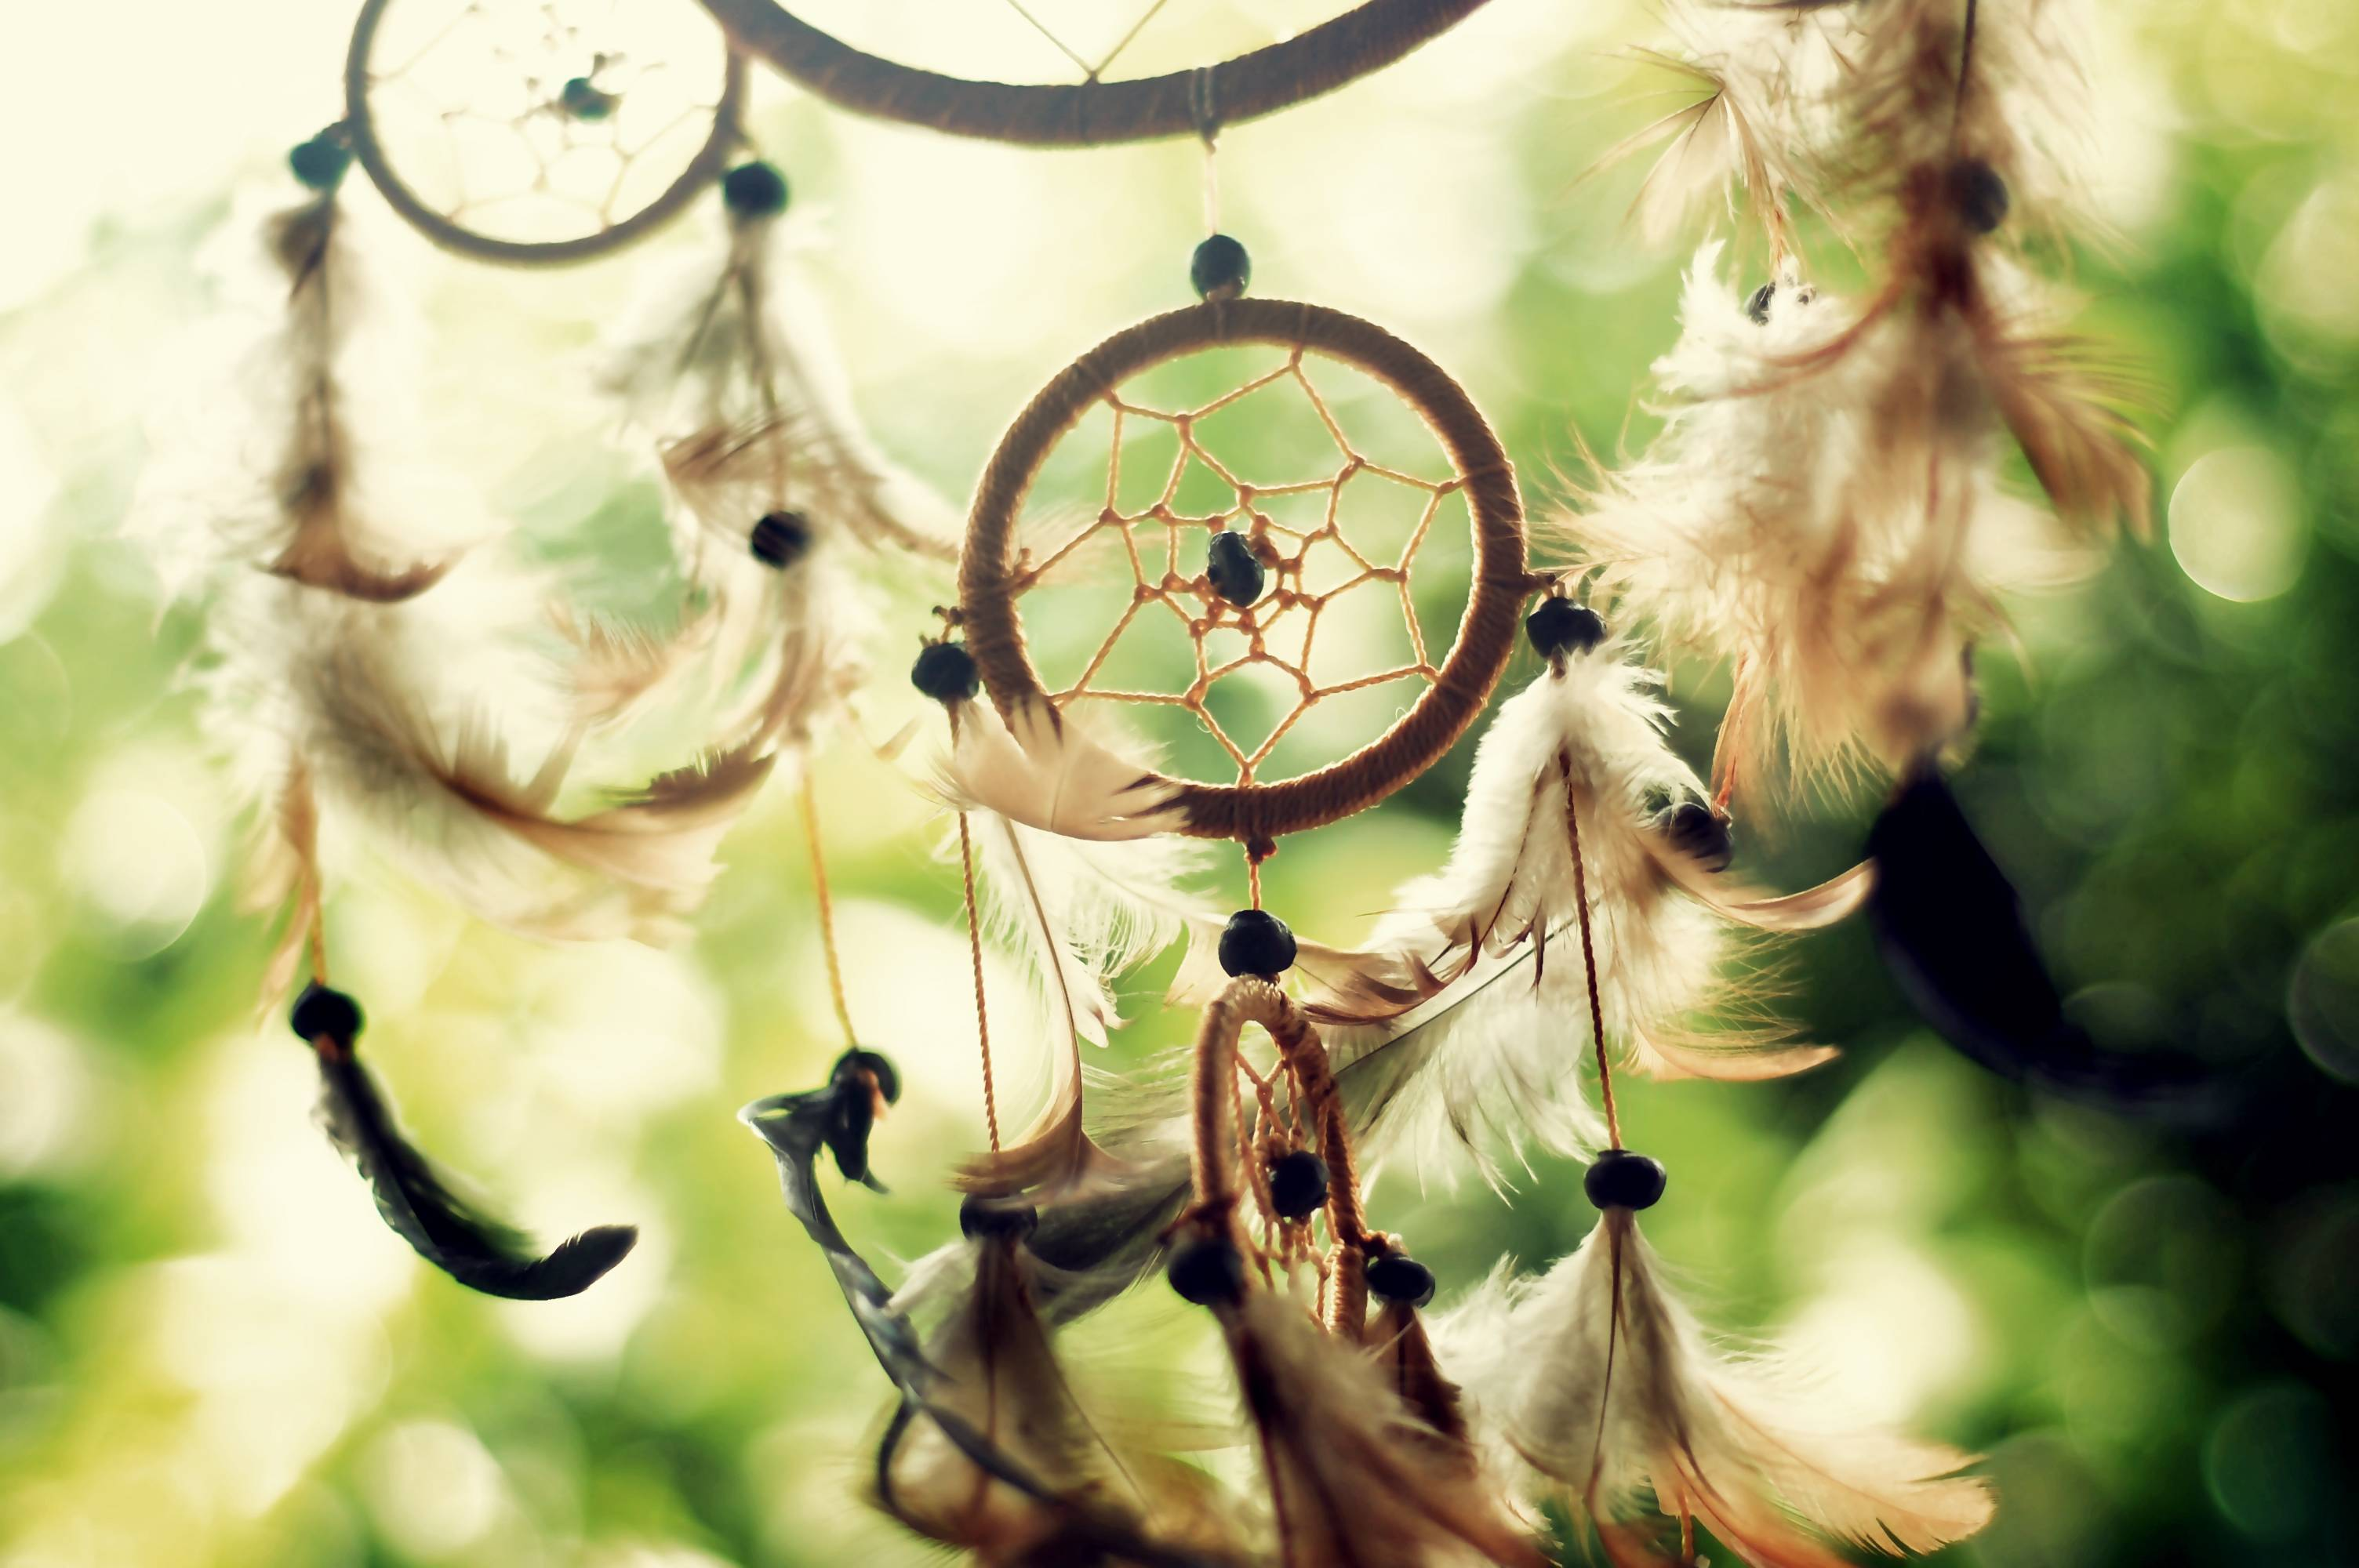 dream catcher eagle desktop wallpaper - photo #23